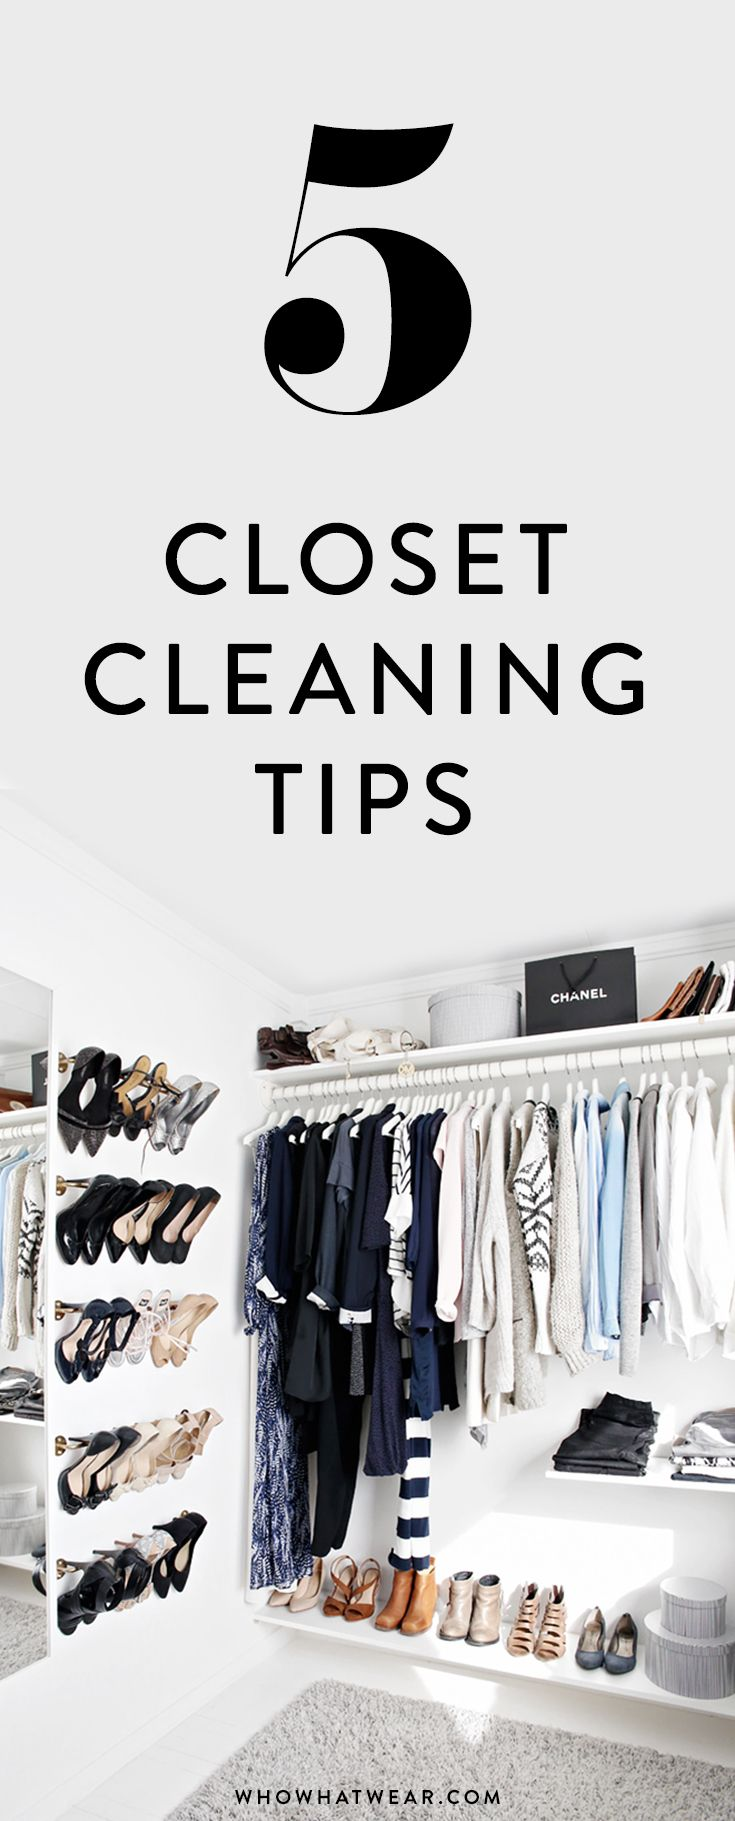 5 new closet cleaning tips that will help you get your space into tip-top shape // spring cleaning